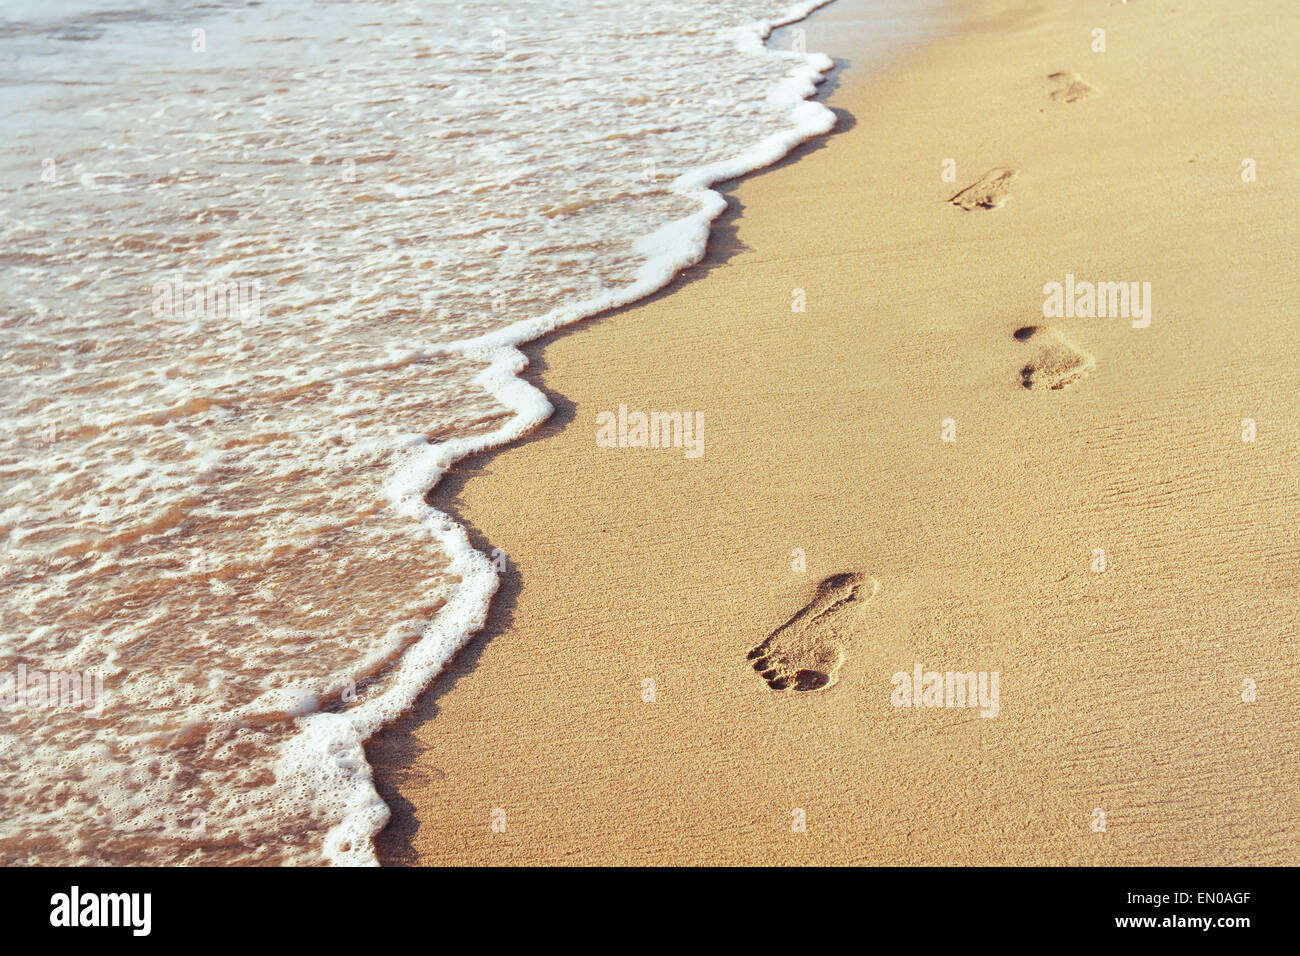 way to new life, wellbeing concept, Footprints in the sand - Stock Image